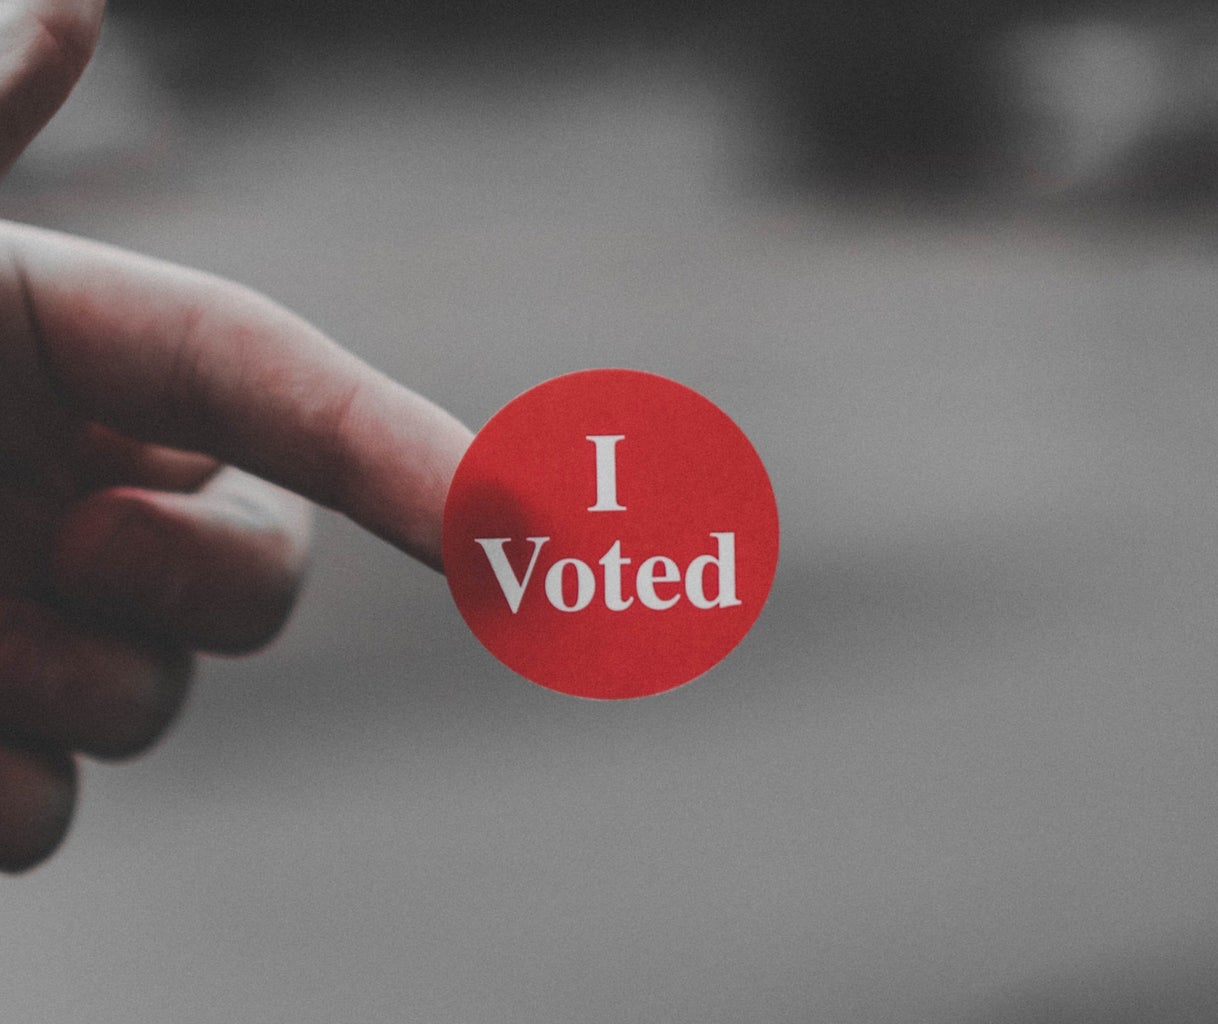 """Hand holding a red sticker with the words """"I Voted"""""""